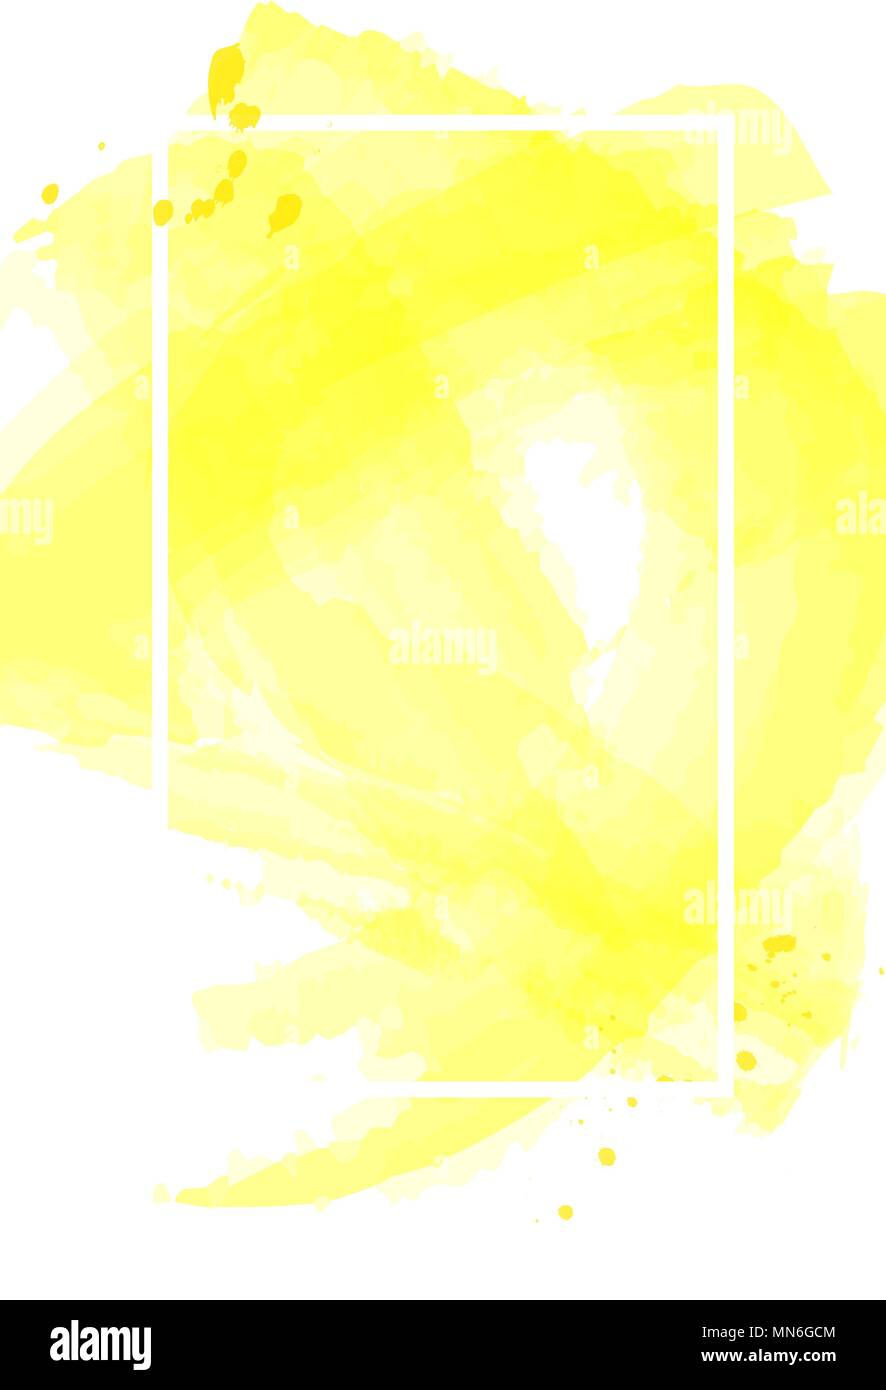 yellow watercolor abstract blank poster template background texture